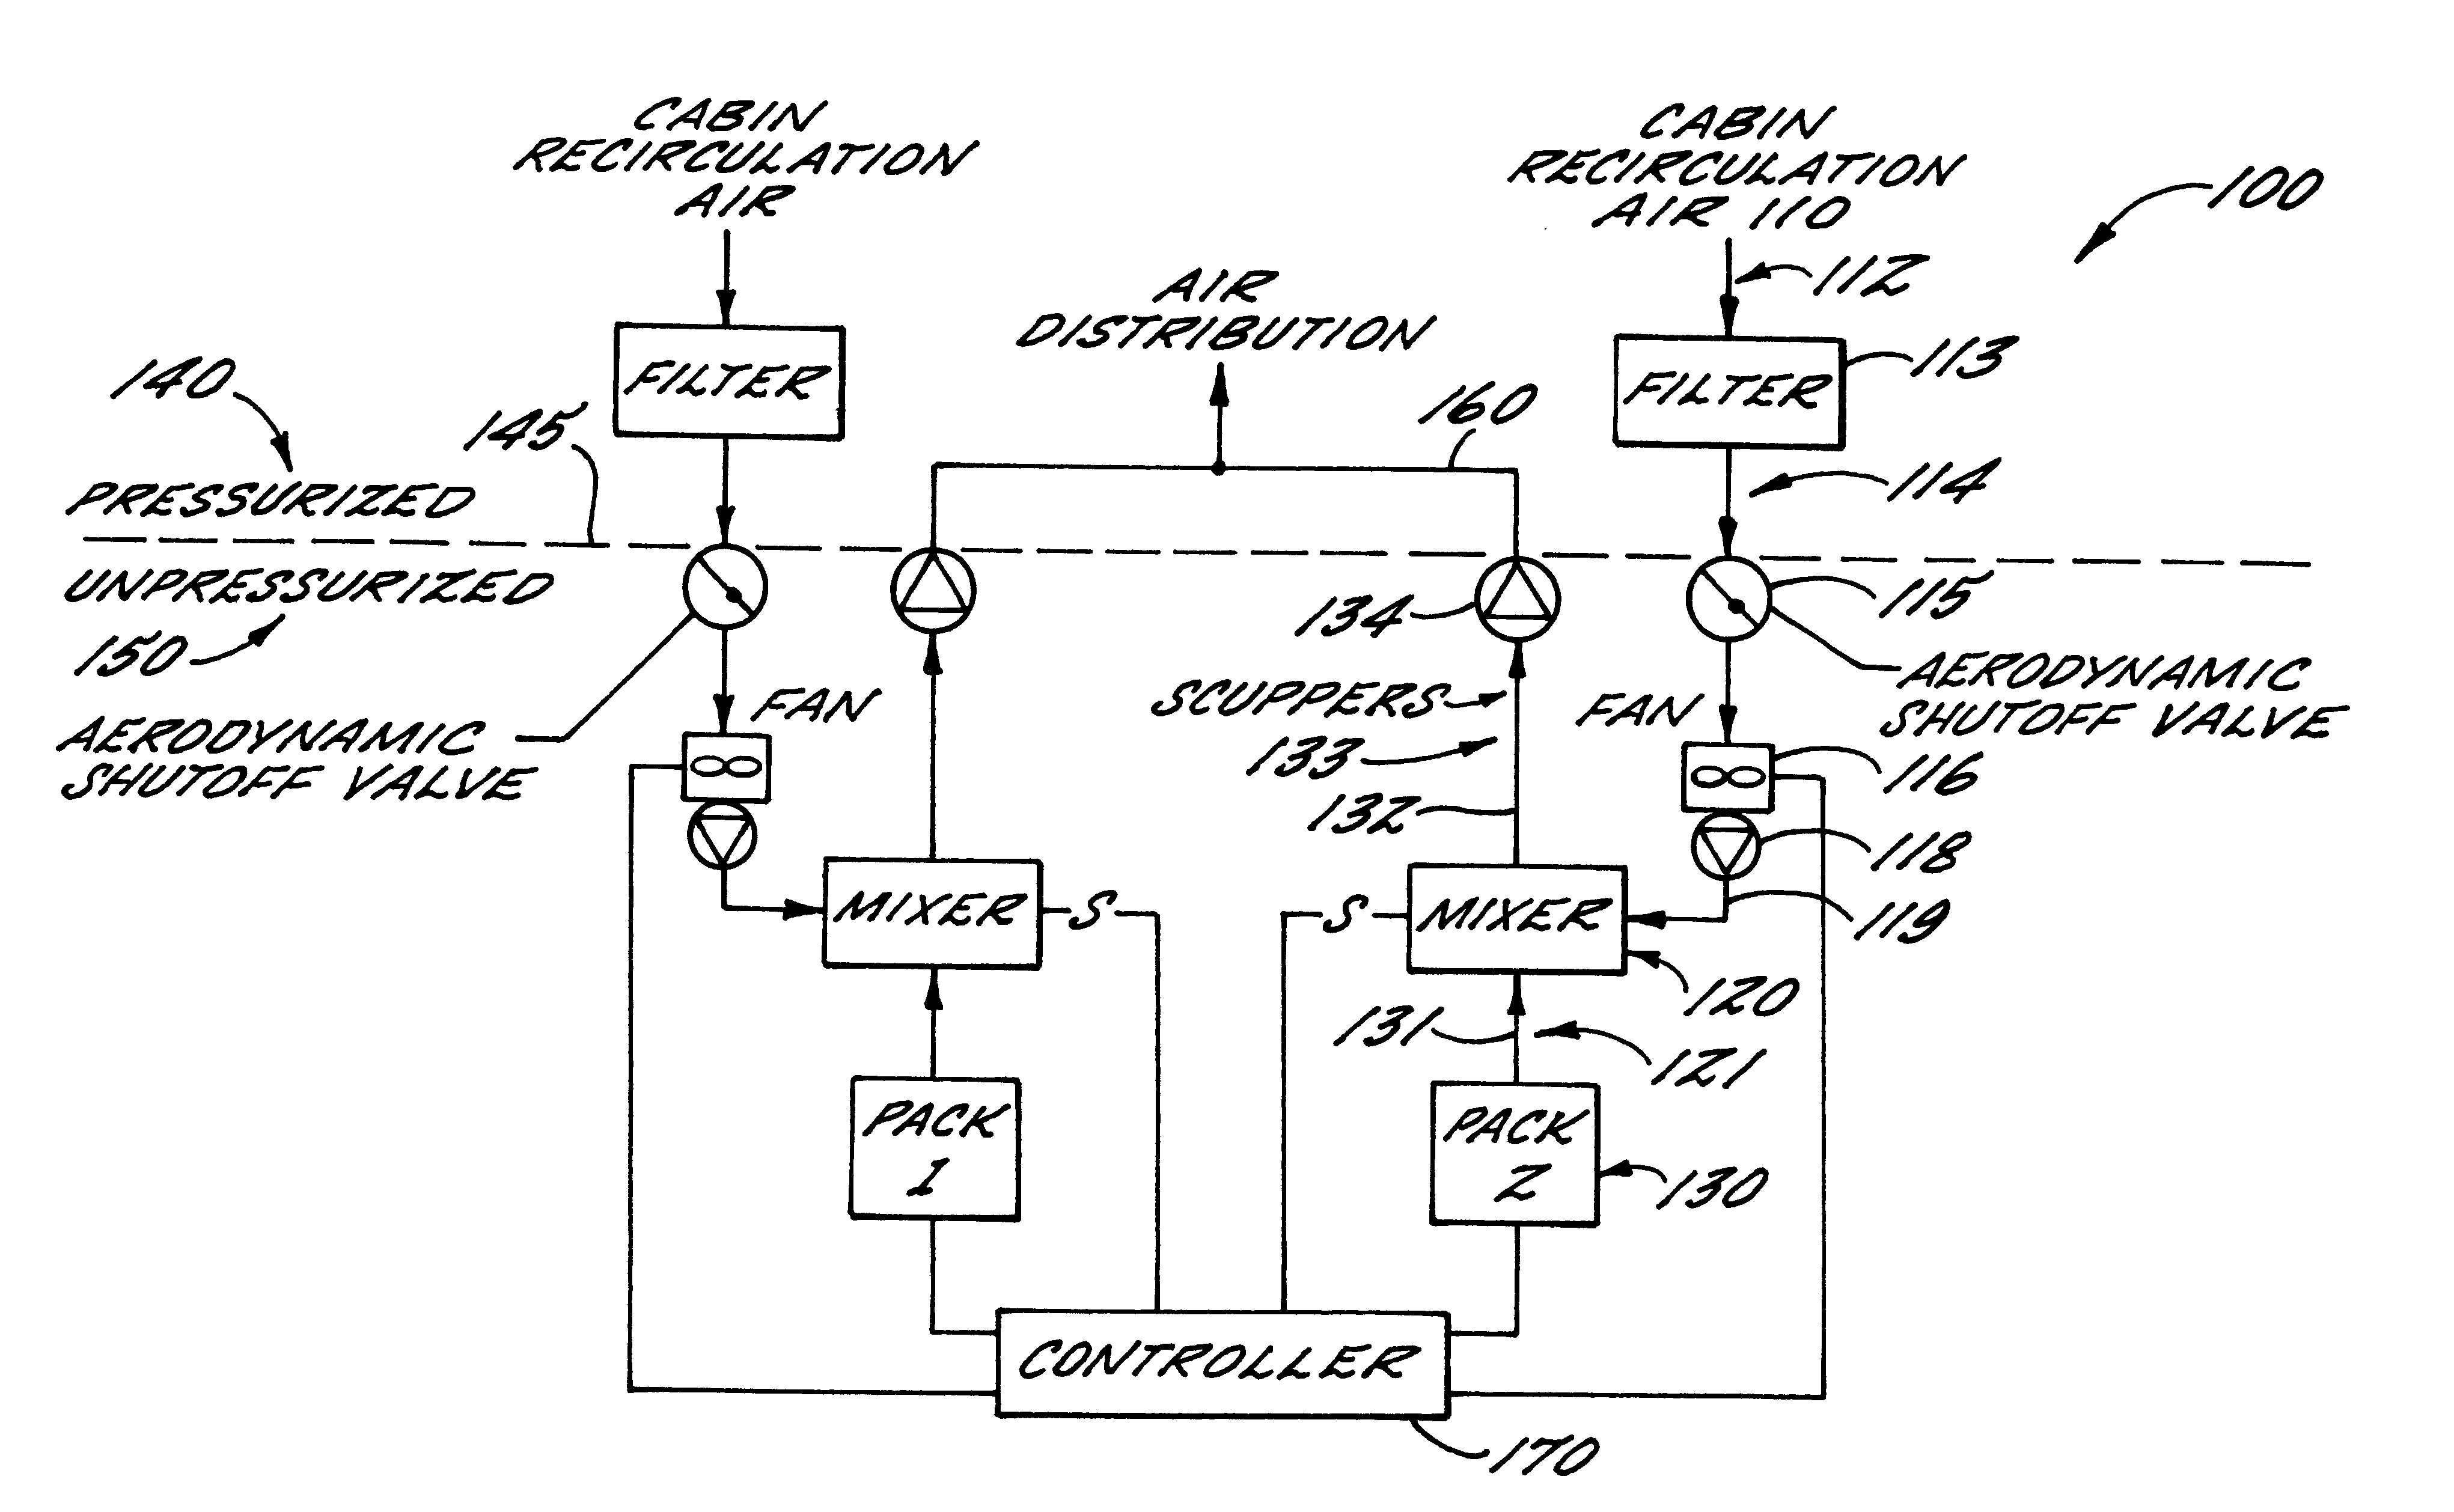 aircraft air conditioning system. patent drawing aircraft air conditioning system n